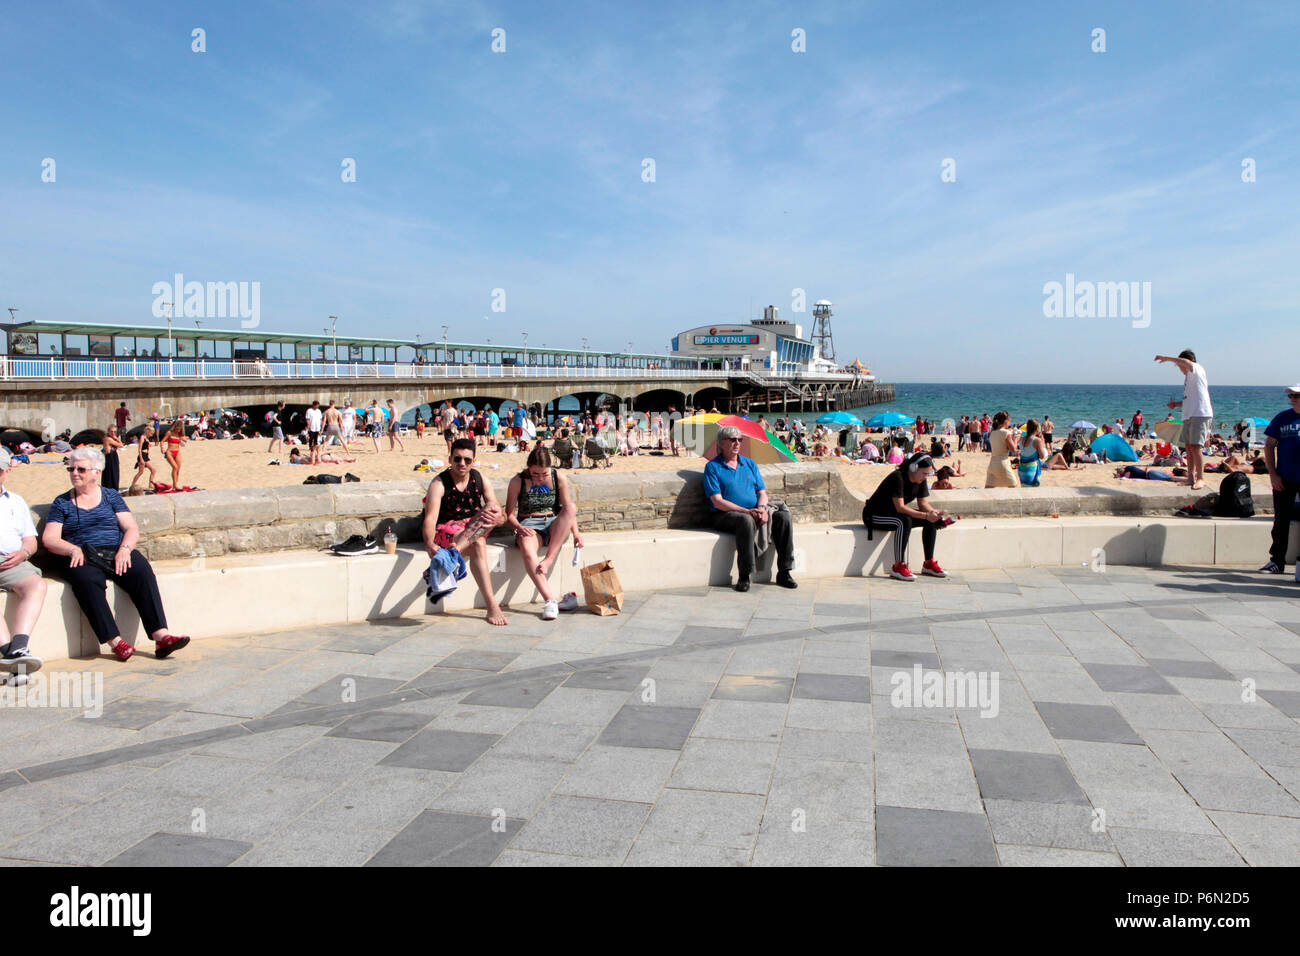 PEOPLE FLOCK TO THE BEACH IN BOURNEMOUTH IN THE LAST WEEK OF JUNE DURING THE UK HEATWAVE 2018. Stock Photo